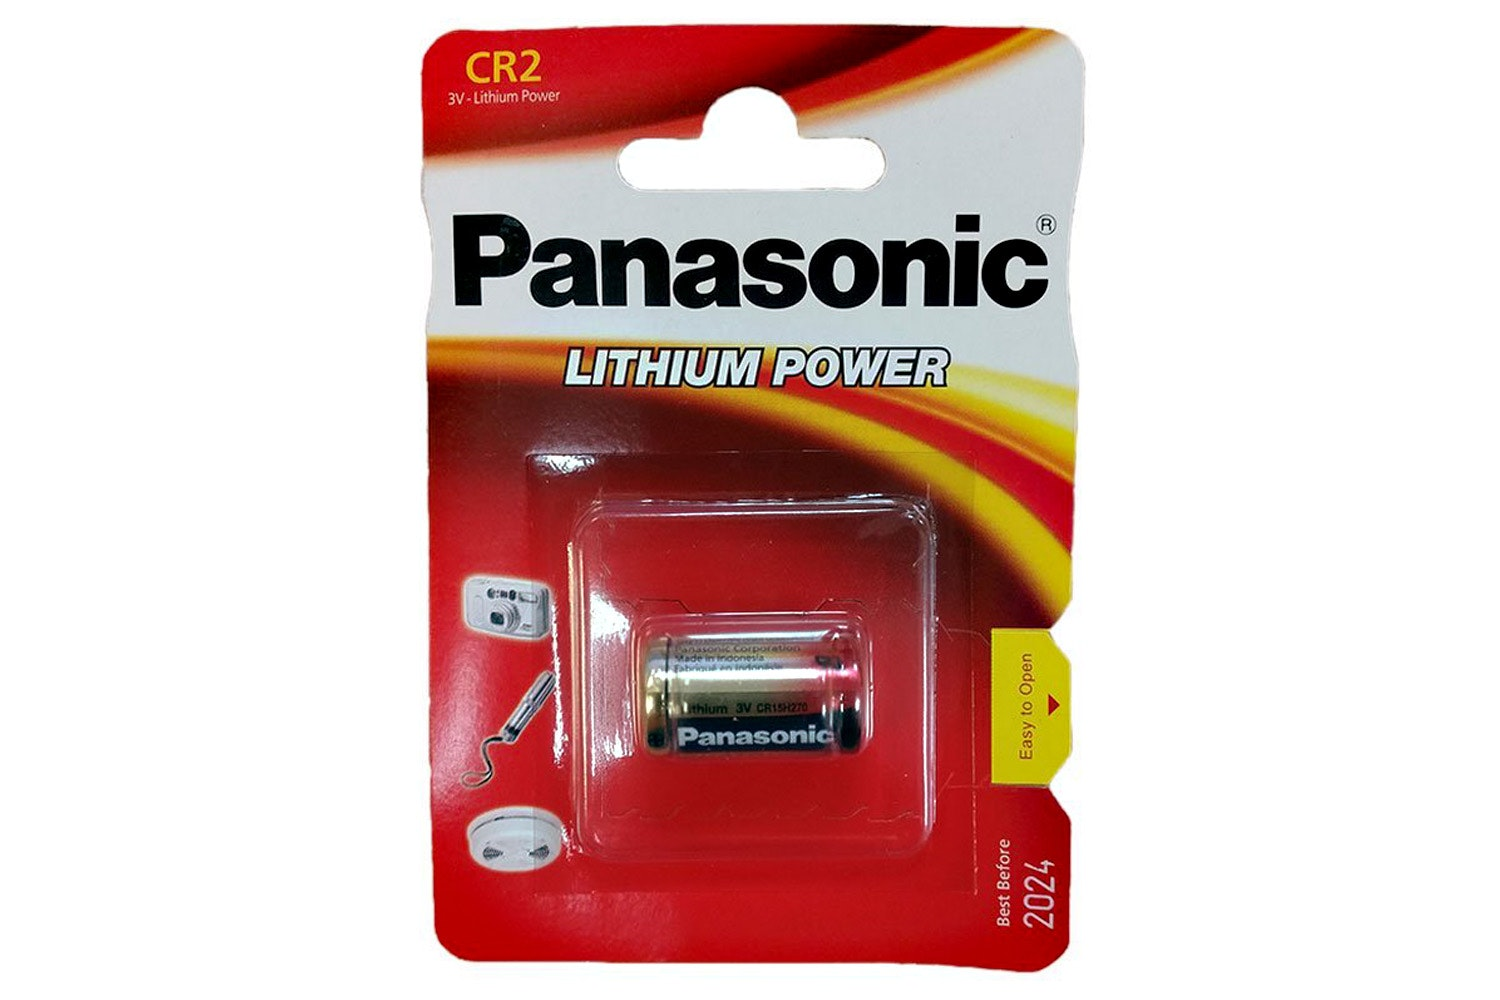 Panasonic Lithium Photo Battery 3V | CR2